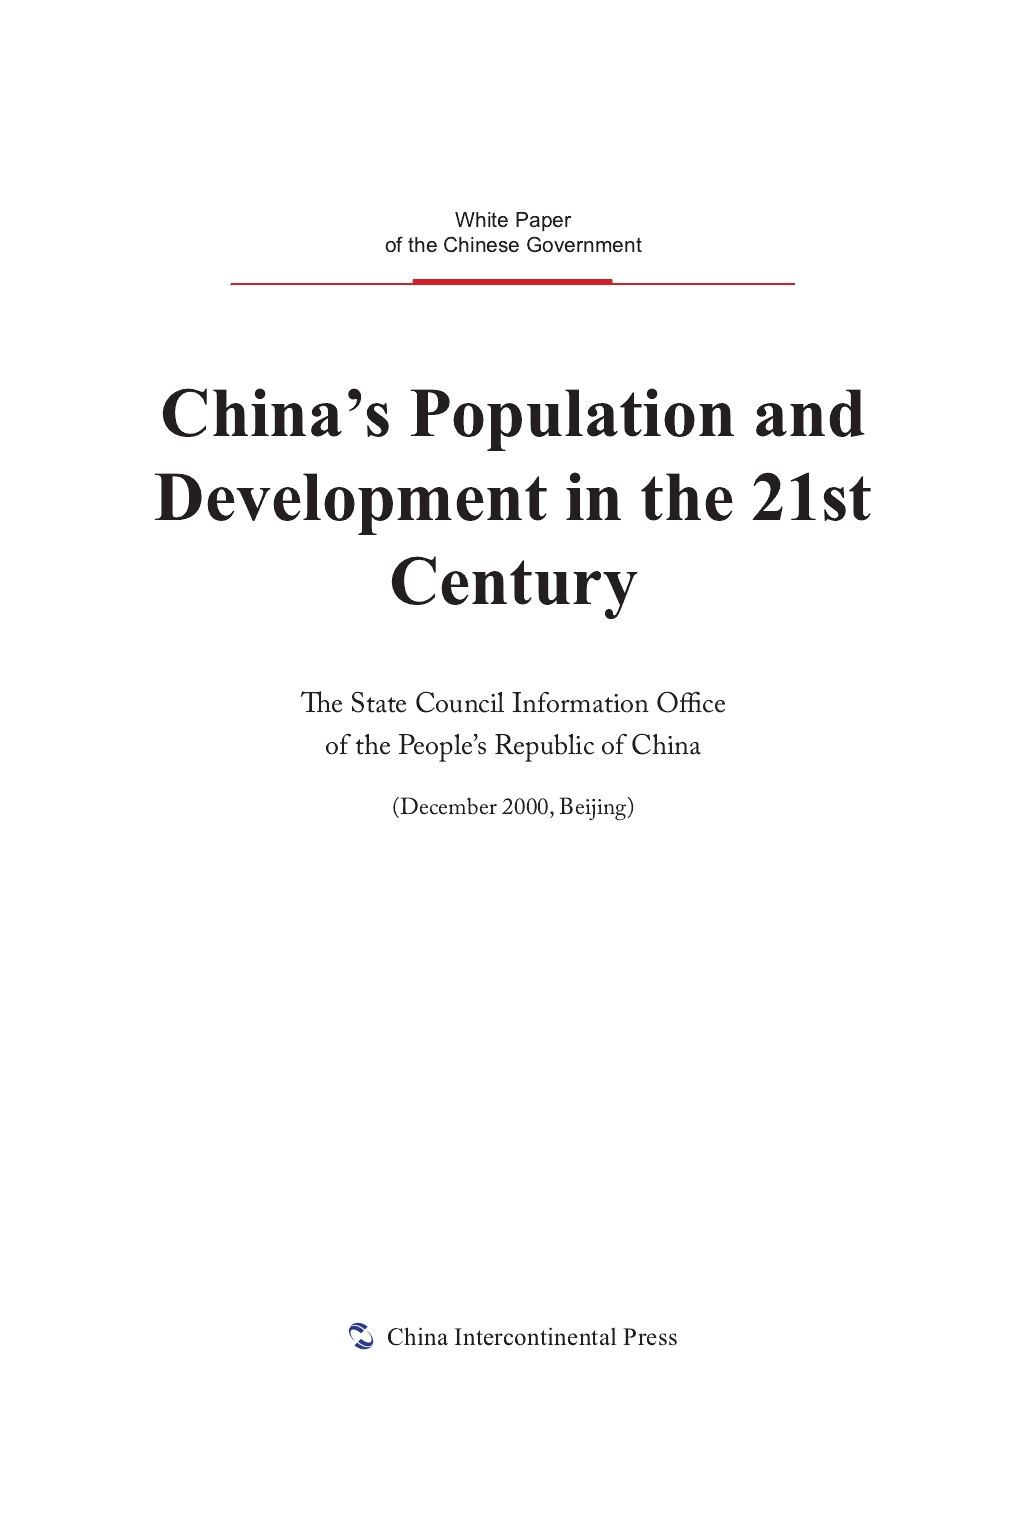 China's Population and Development in the 21st Century